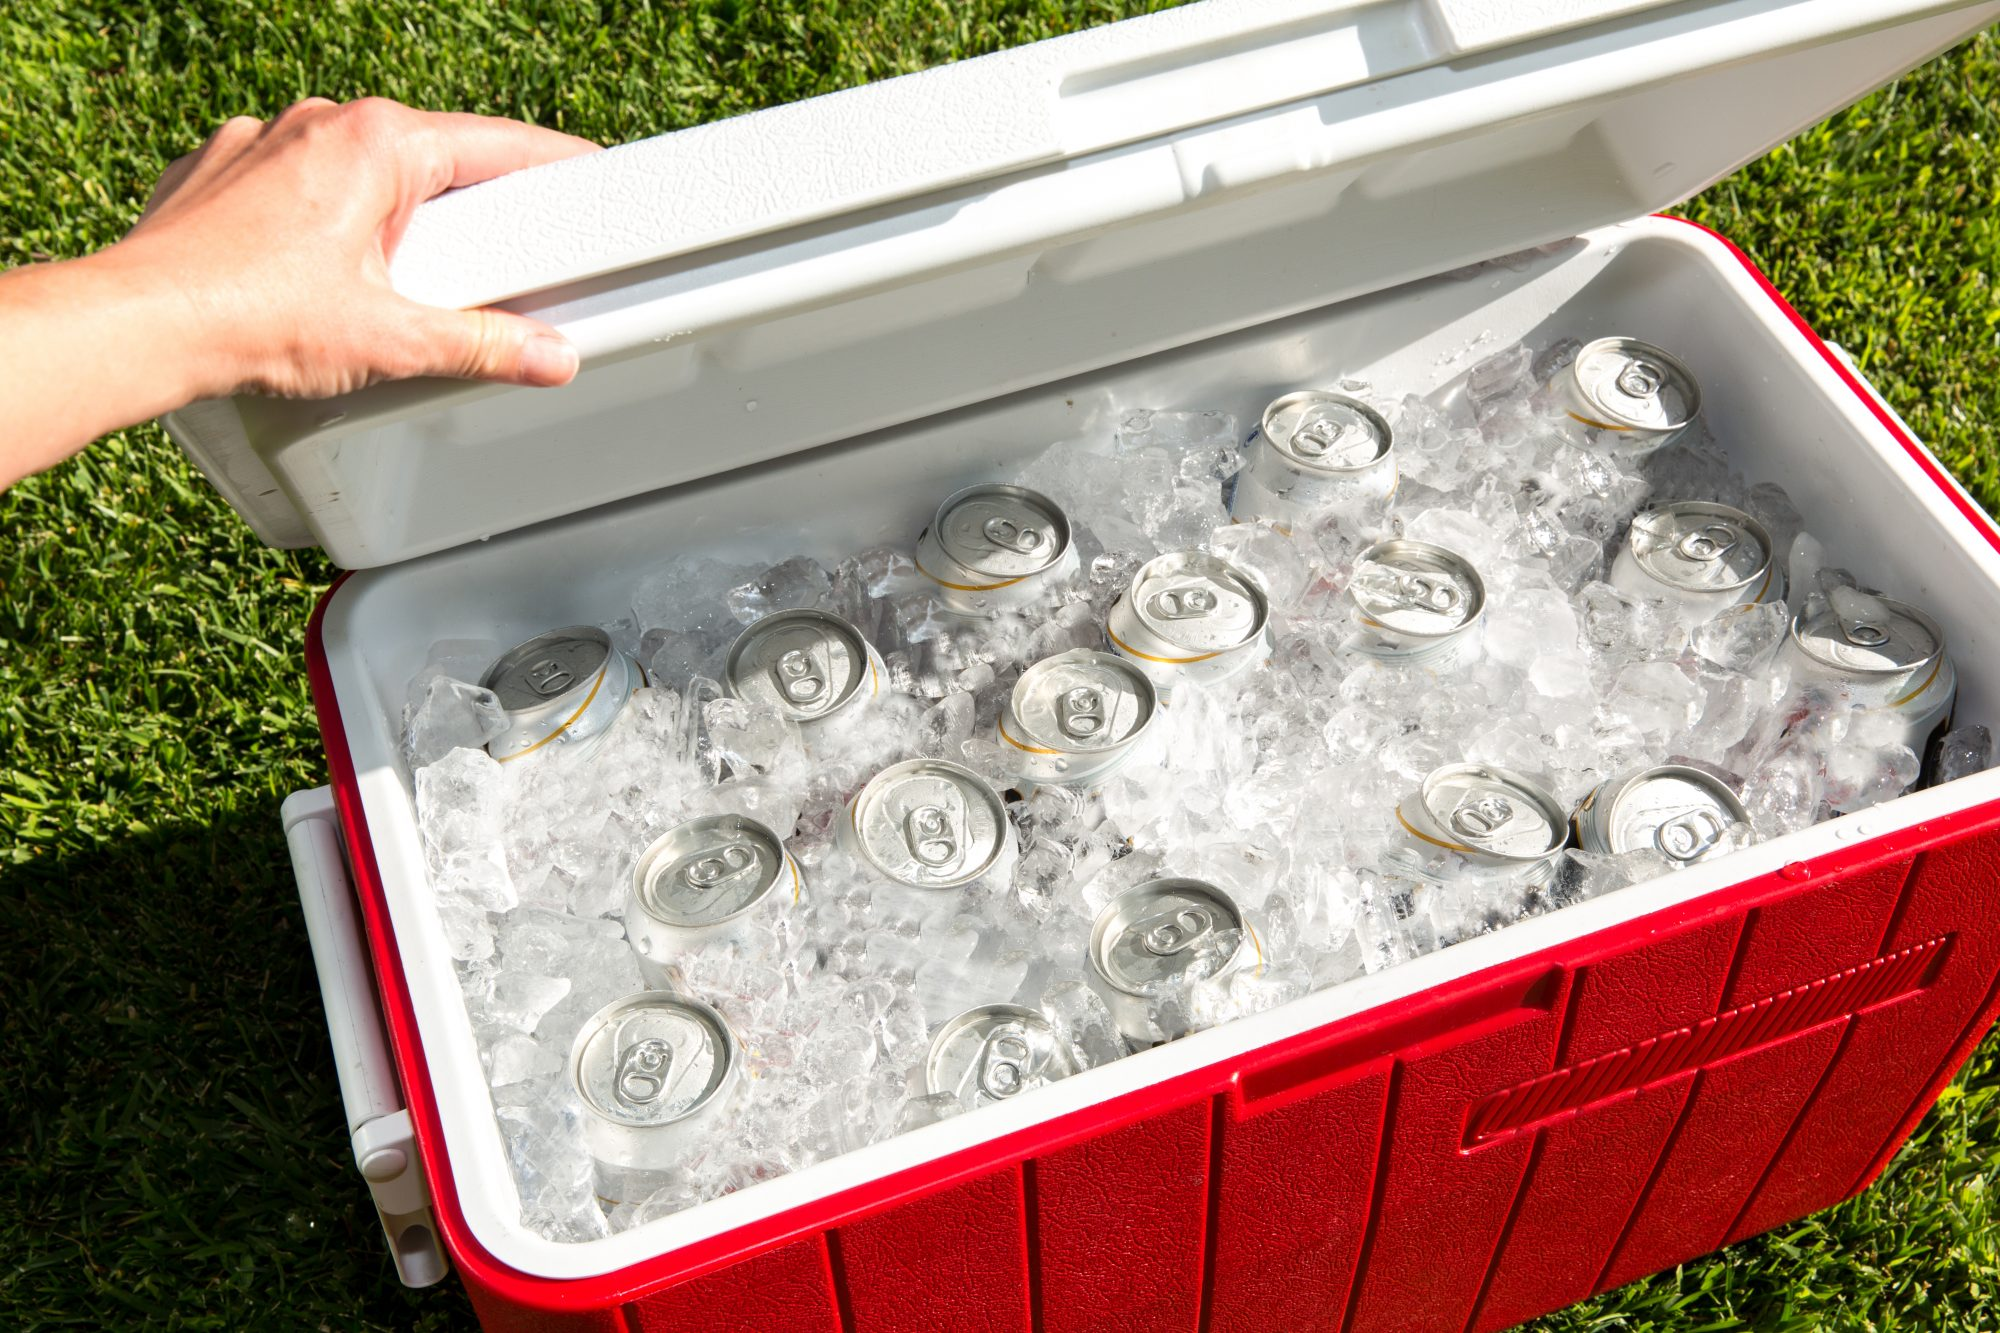 red cooler outside on grass filled with ice and cans